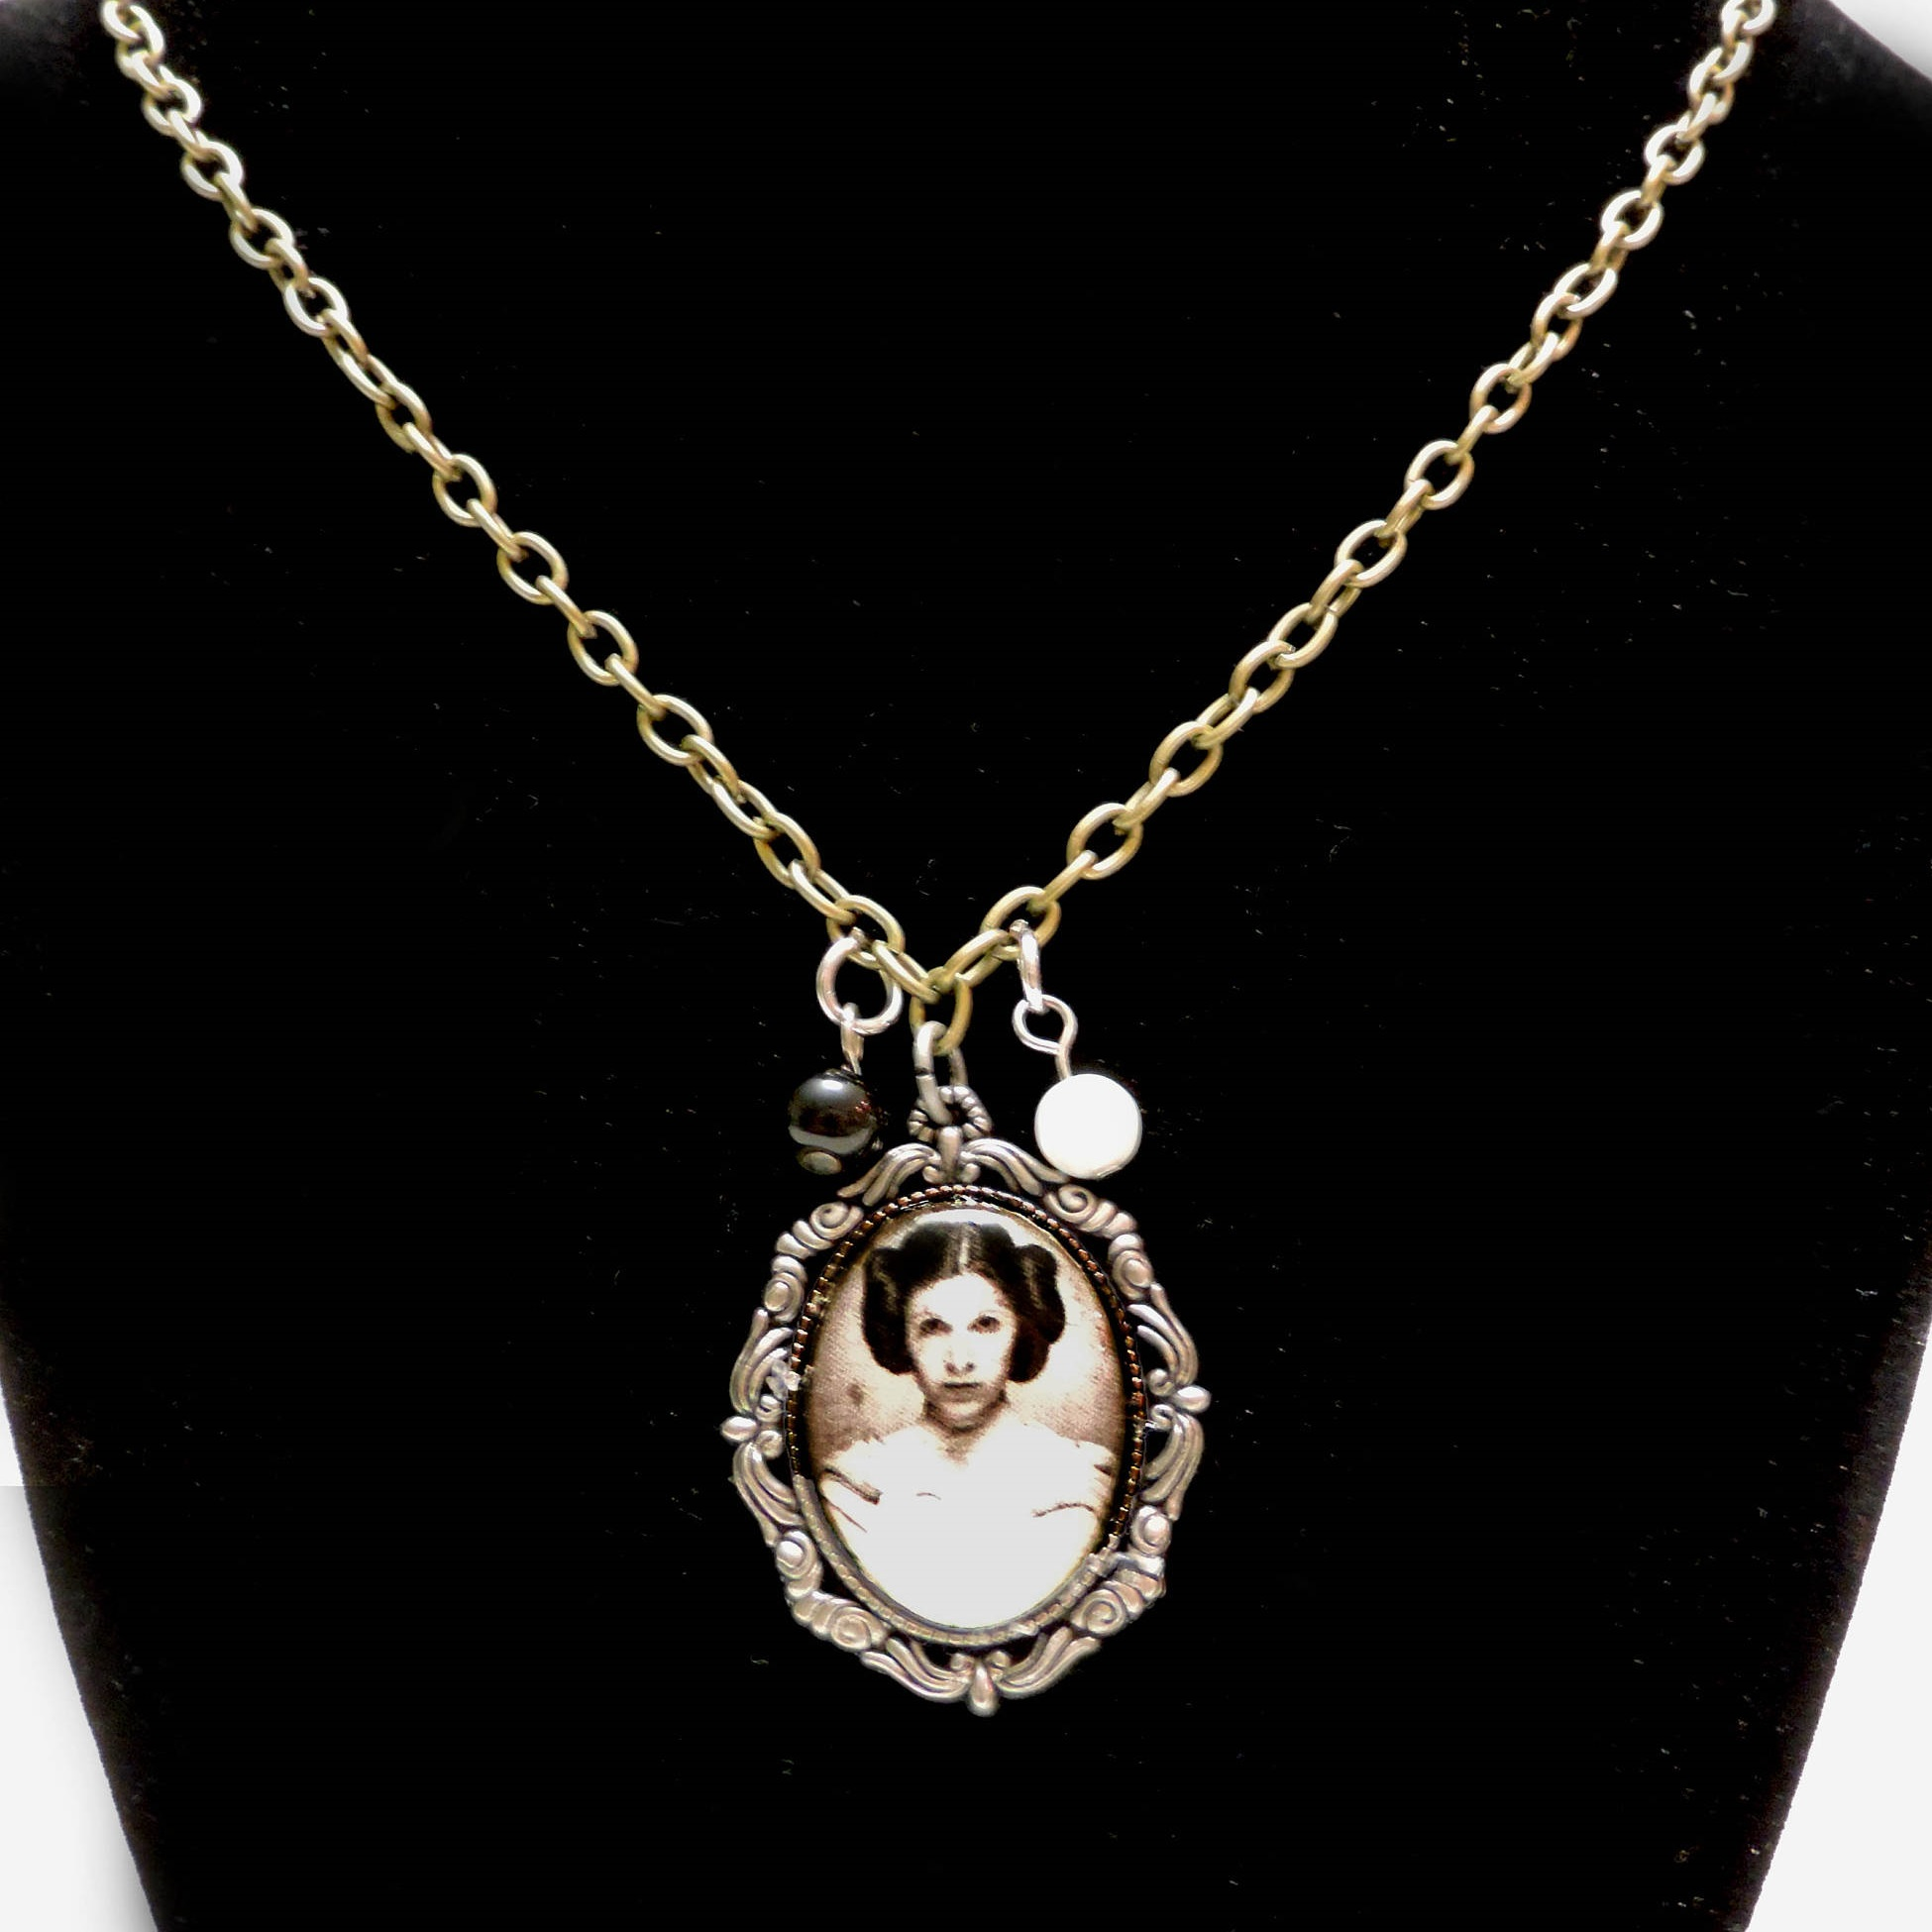 Star Wars Princess Leia Necklace by MariesGeekyArt on Etsy